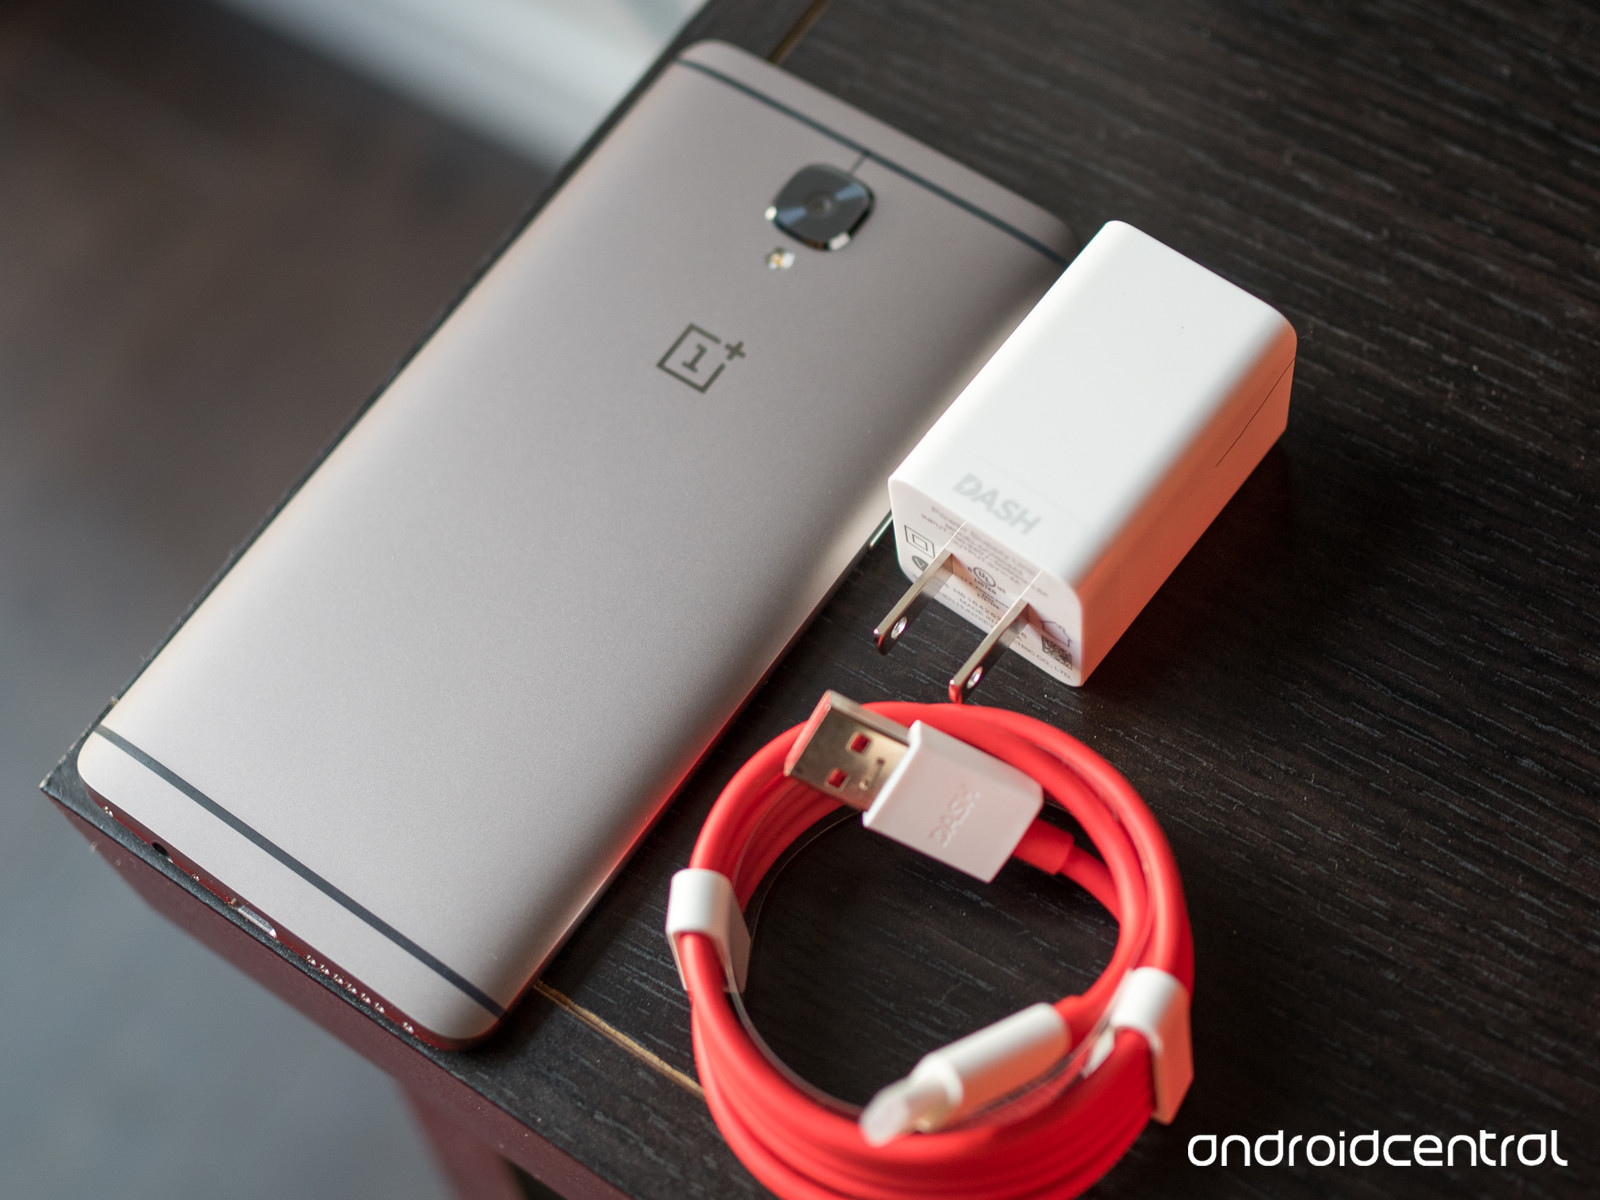 Oneplus 3t One Plus 6 Charger 1884000 Hd Wallpaper